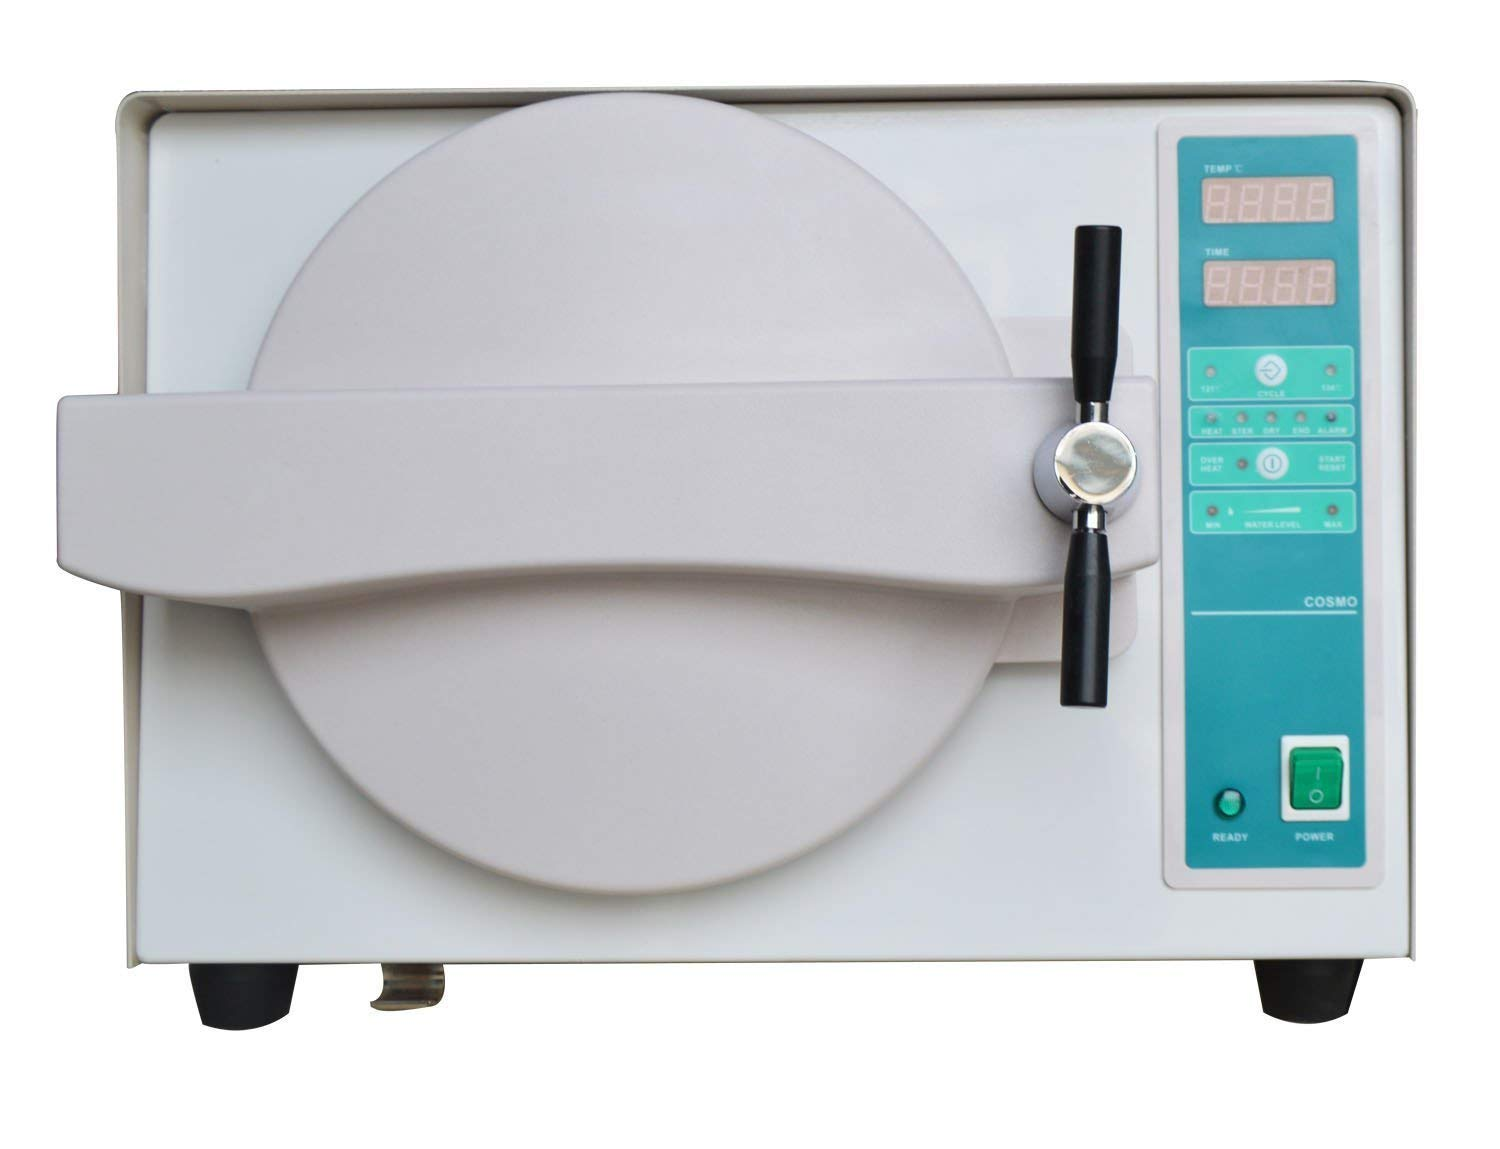 OUBO Mini Lab Euipment Autoclave Vacuum Steam 18L 110V by OUBO (Image #1)